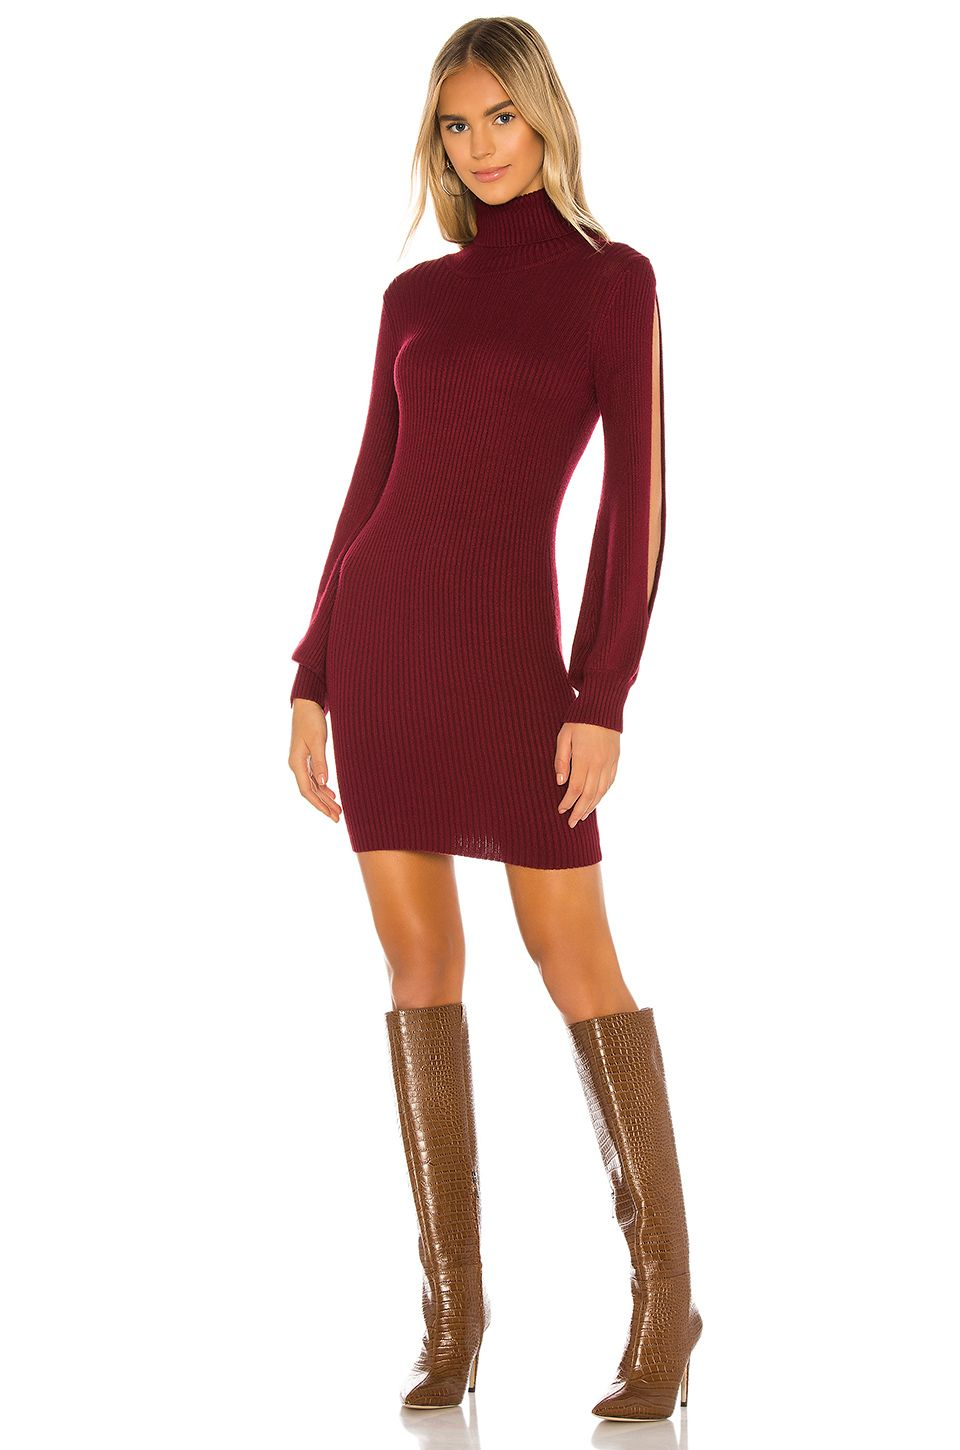 Tularosa Brisk Sweater Dress in Burgundy